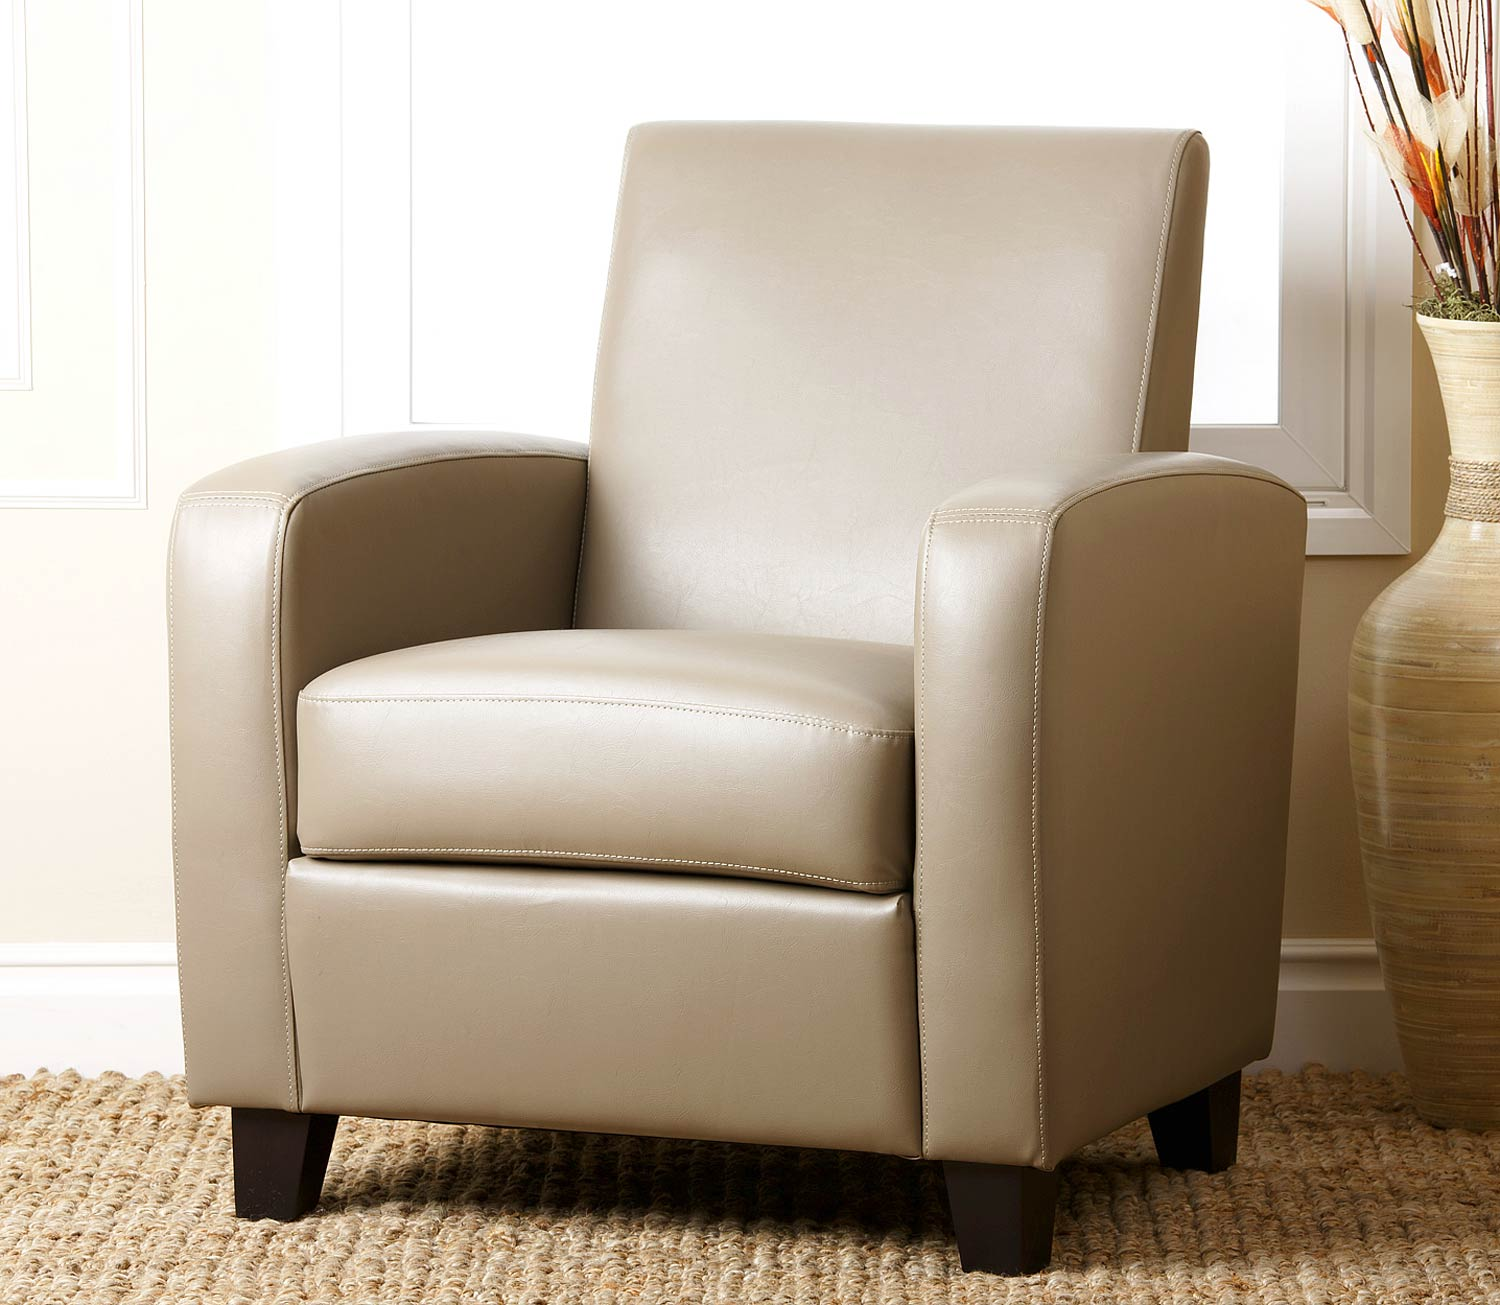 Abbyson Living Mercer Bonded Leather Club Chair - Grey